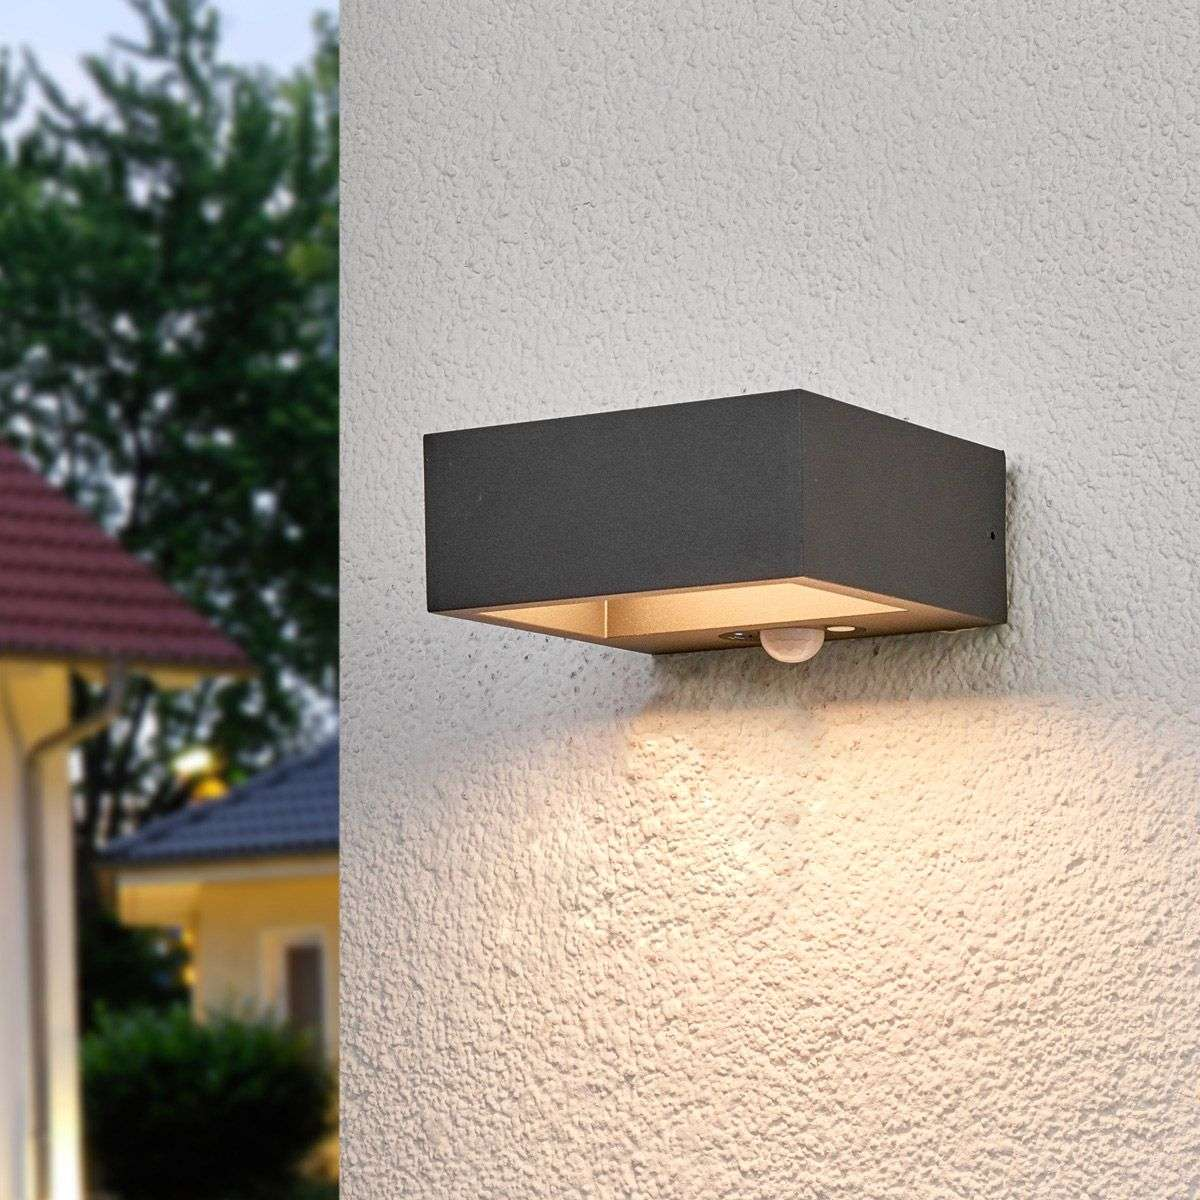 Solar powered led outdoor wall light mahra sensor for Lampe exterieur solaire avec detecteur